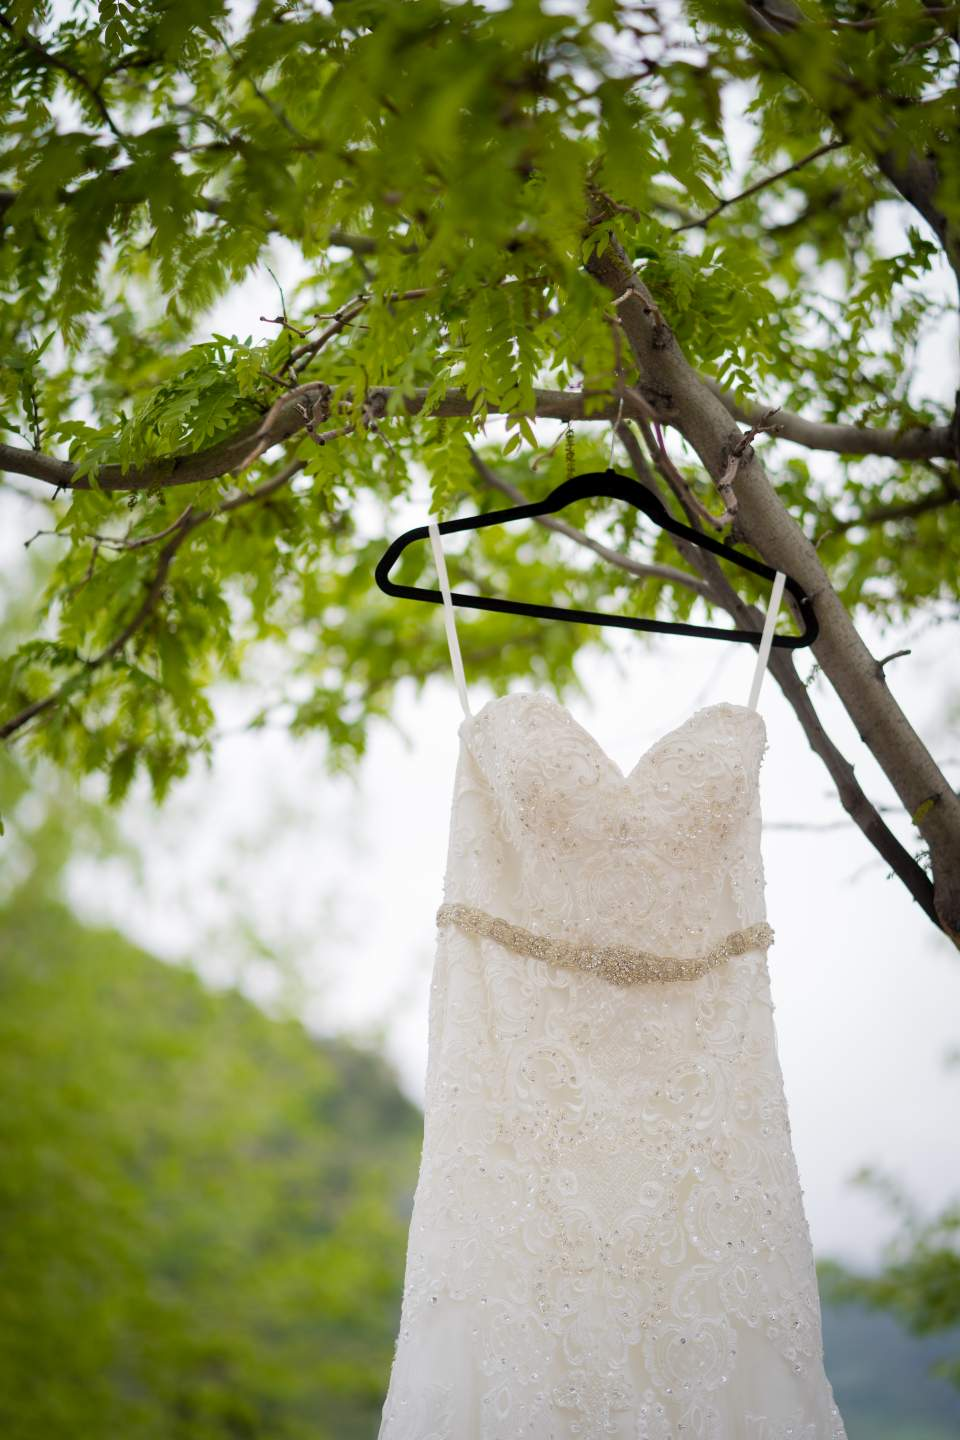 brides dress hanging